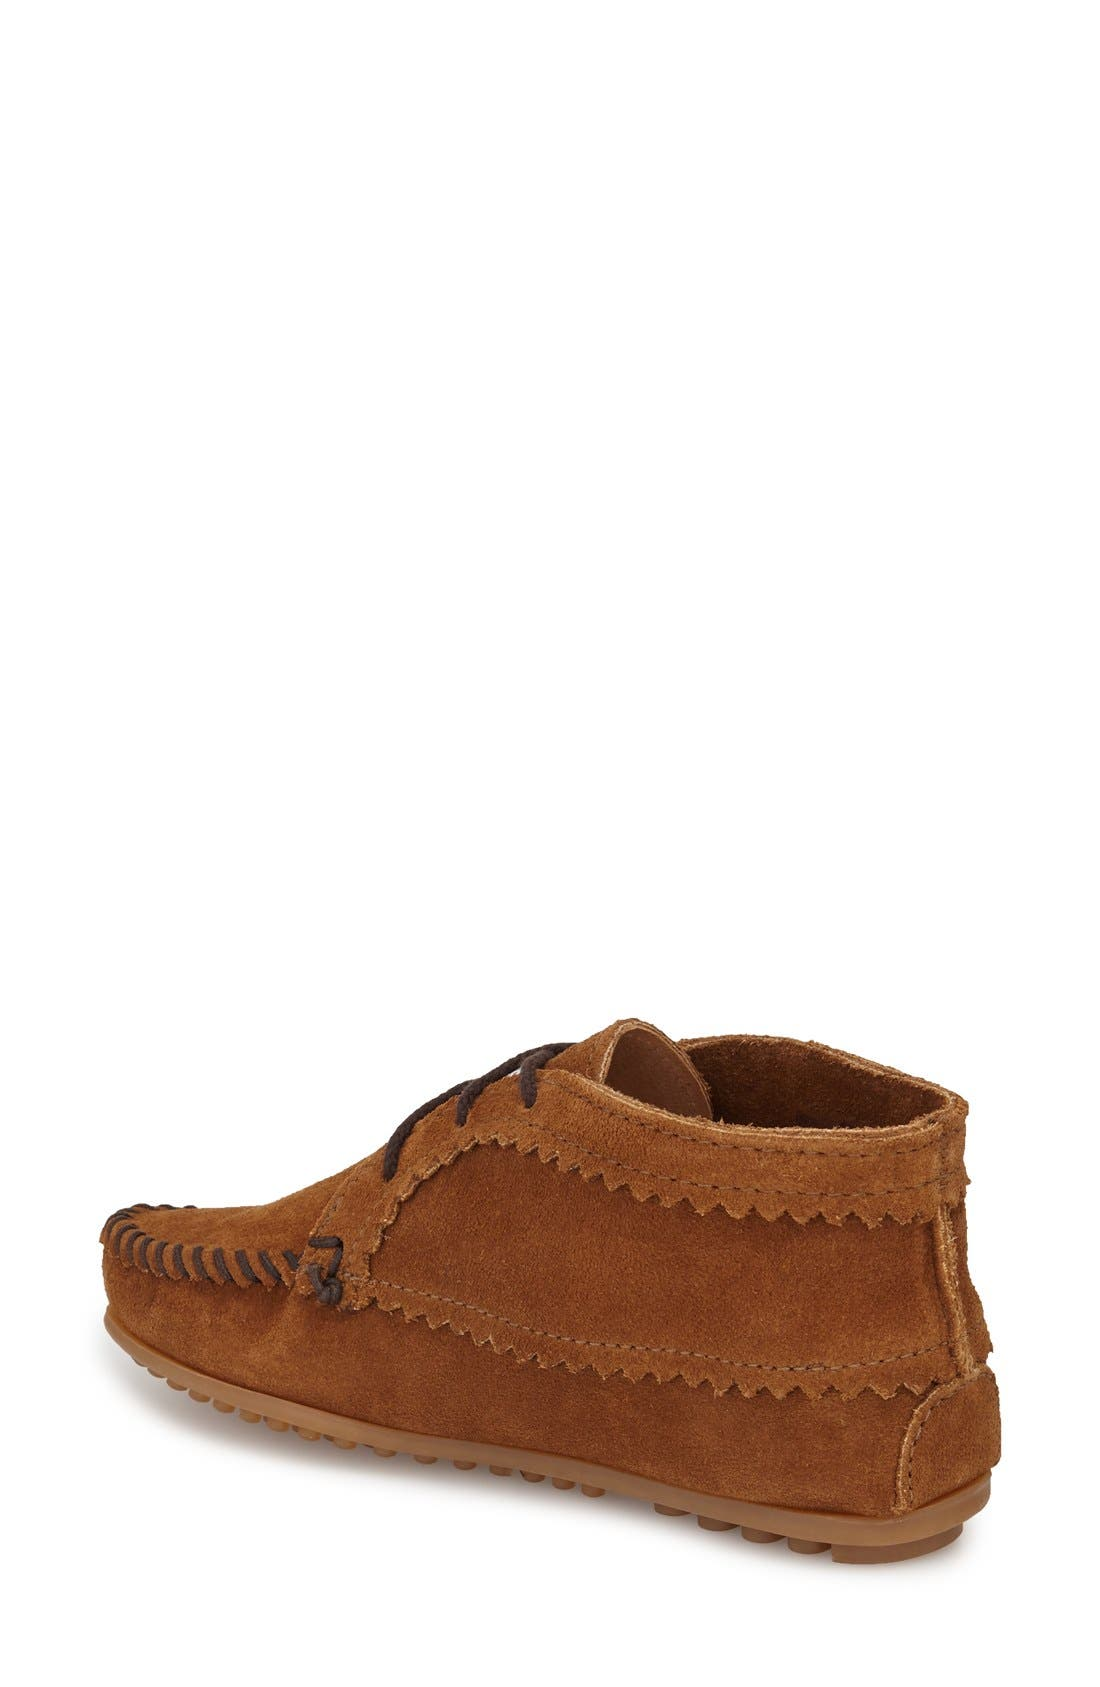 Chukka Moccasin Boot,                             Alternate thumbnail 2, color,                             DUSTY BROWN